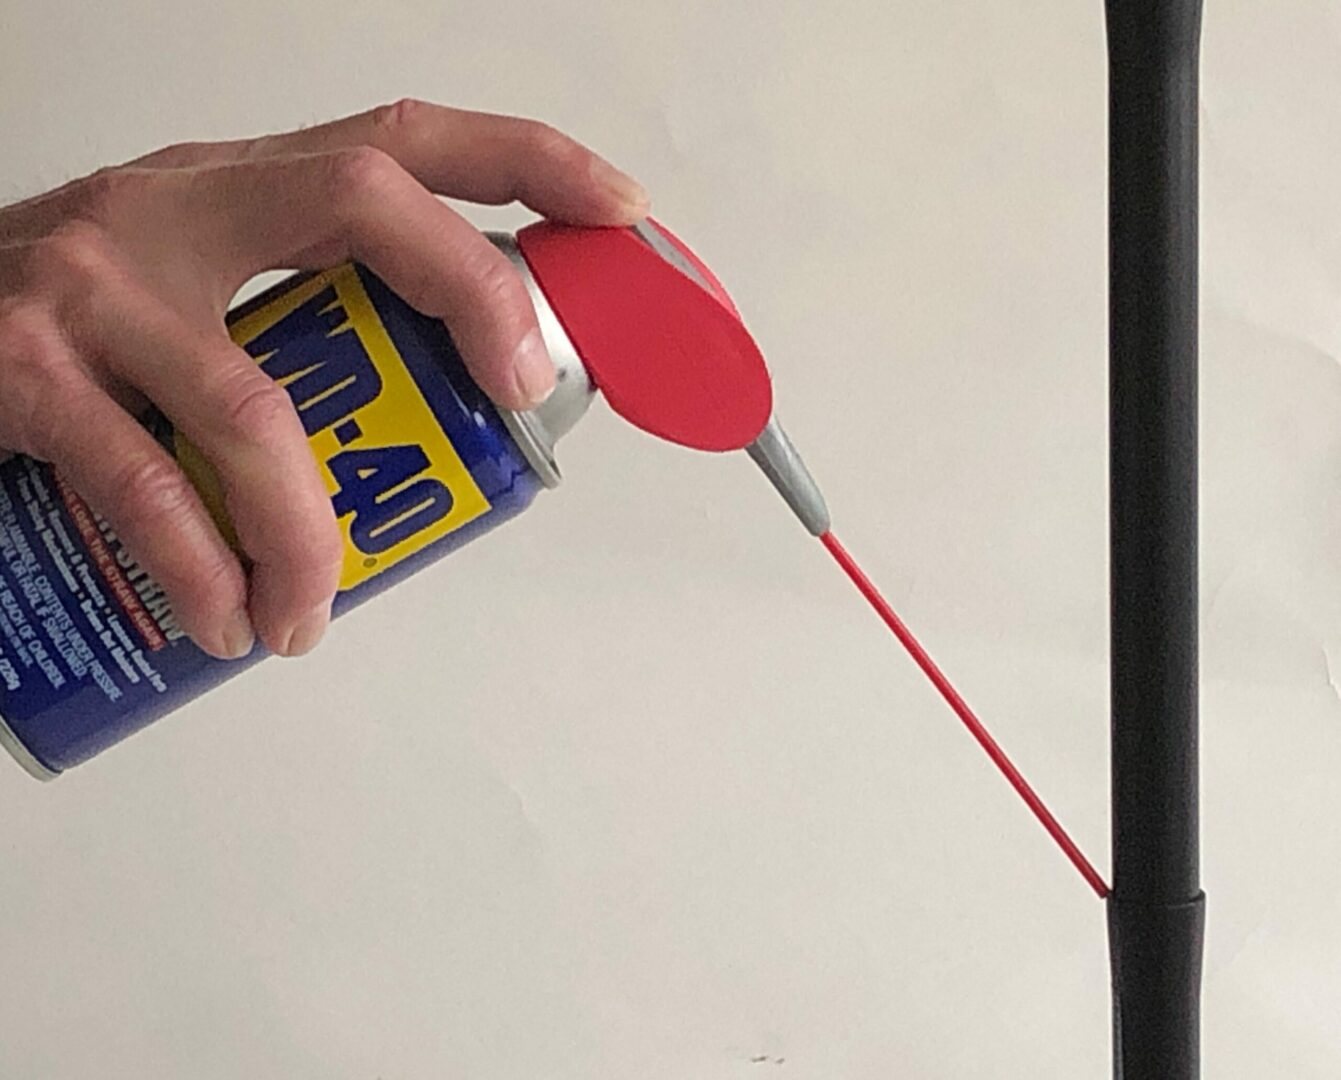 WD-40 WADING AND WALKING